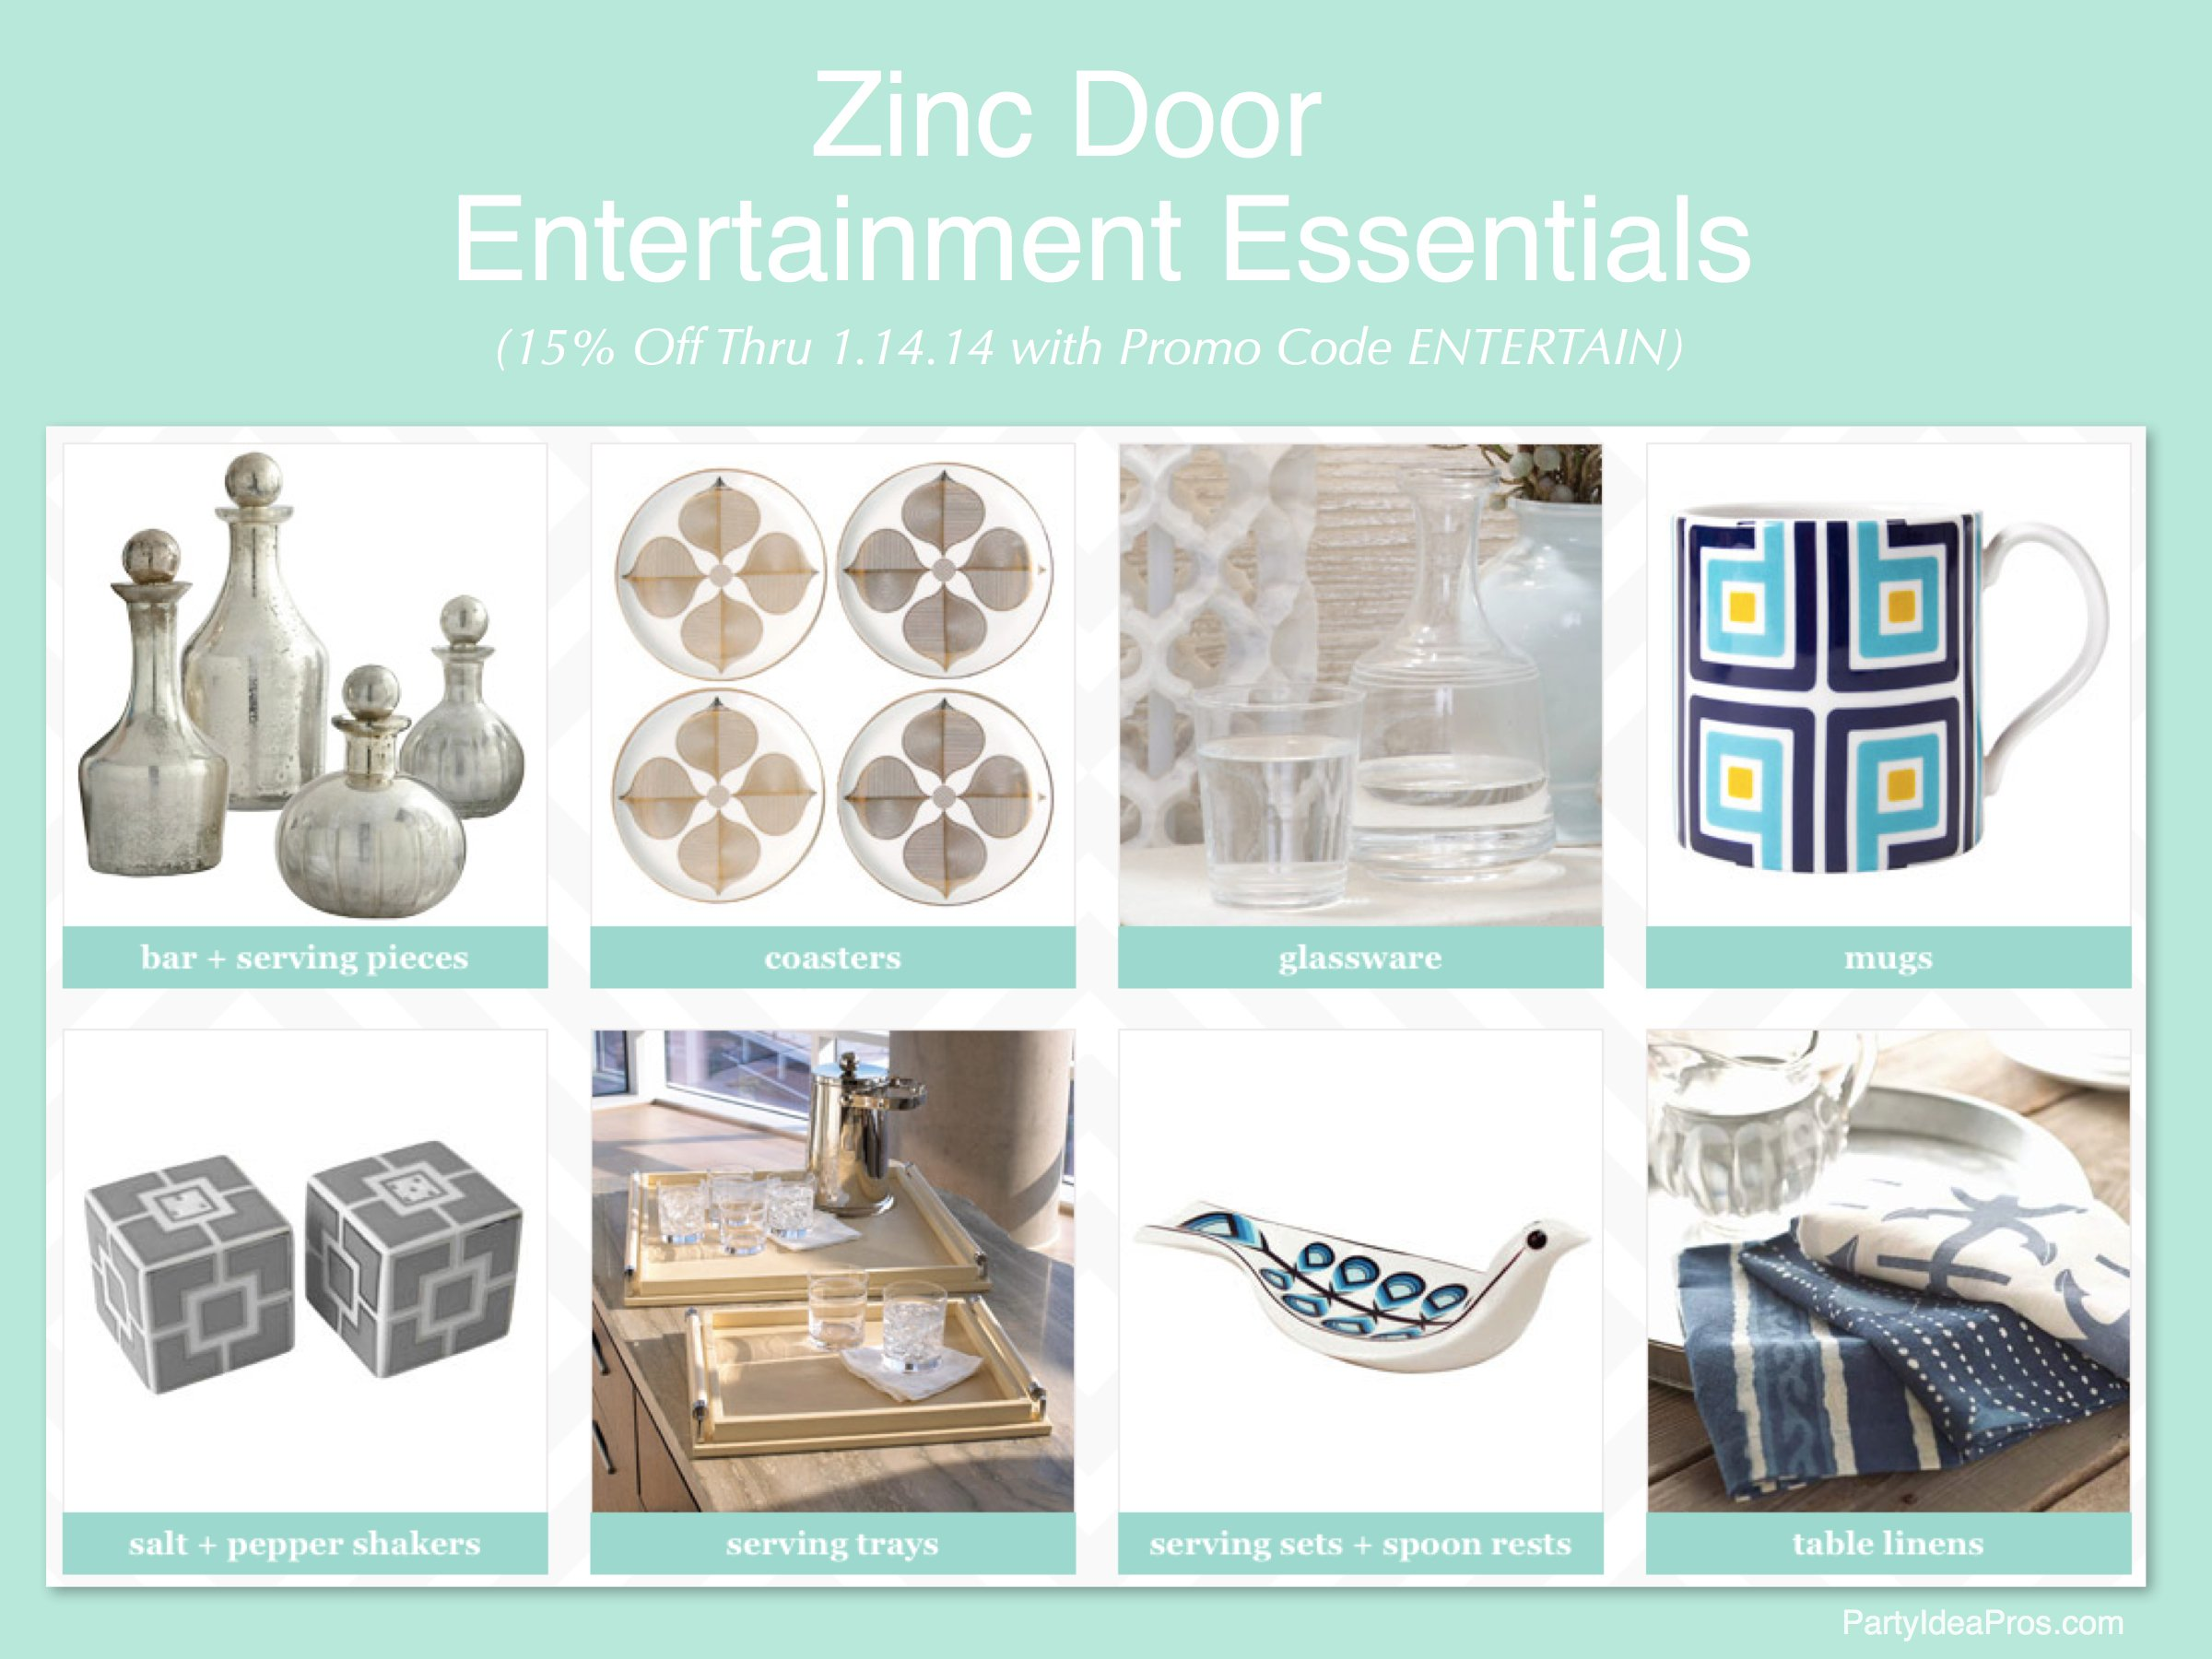 Entertaining Essentials on sale at Zinc Door